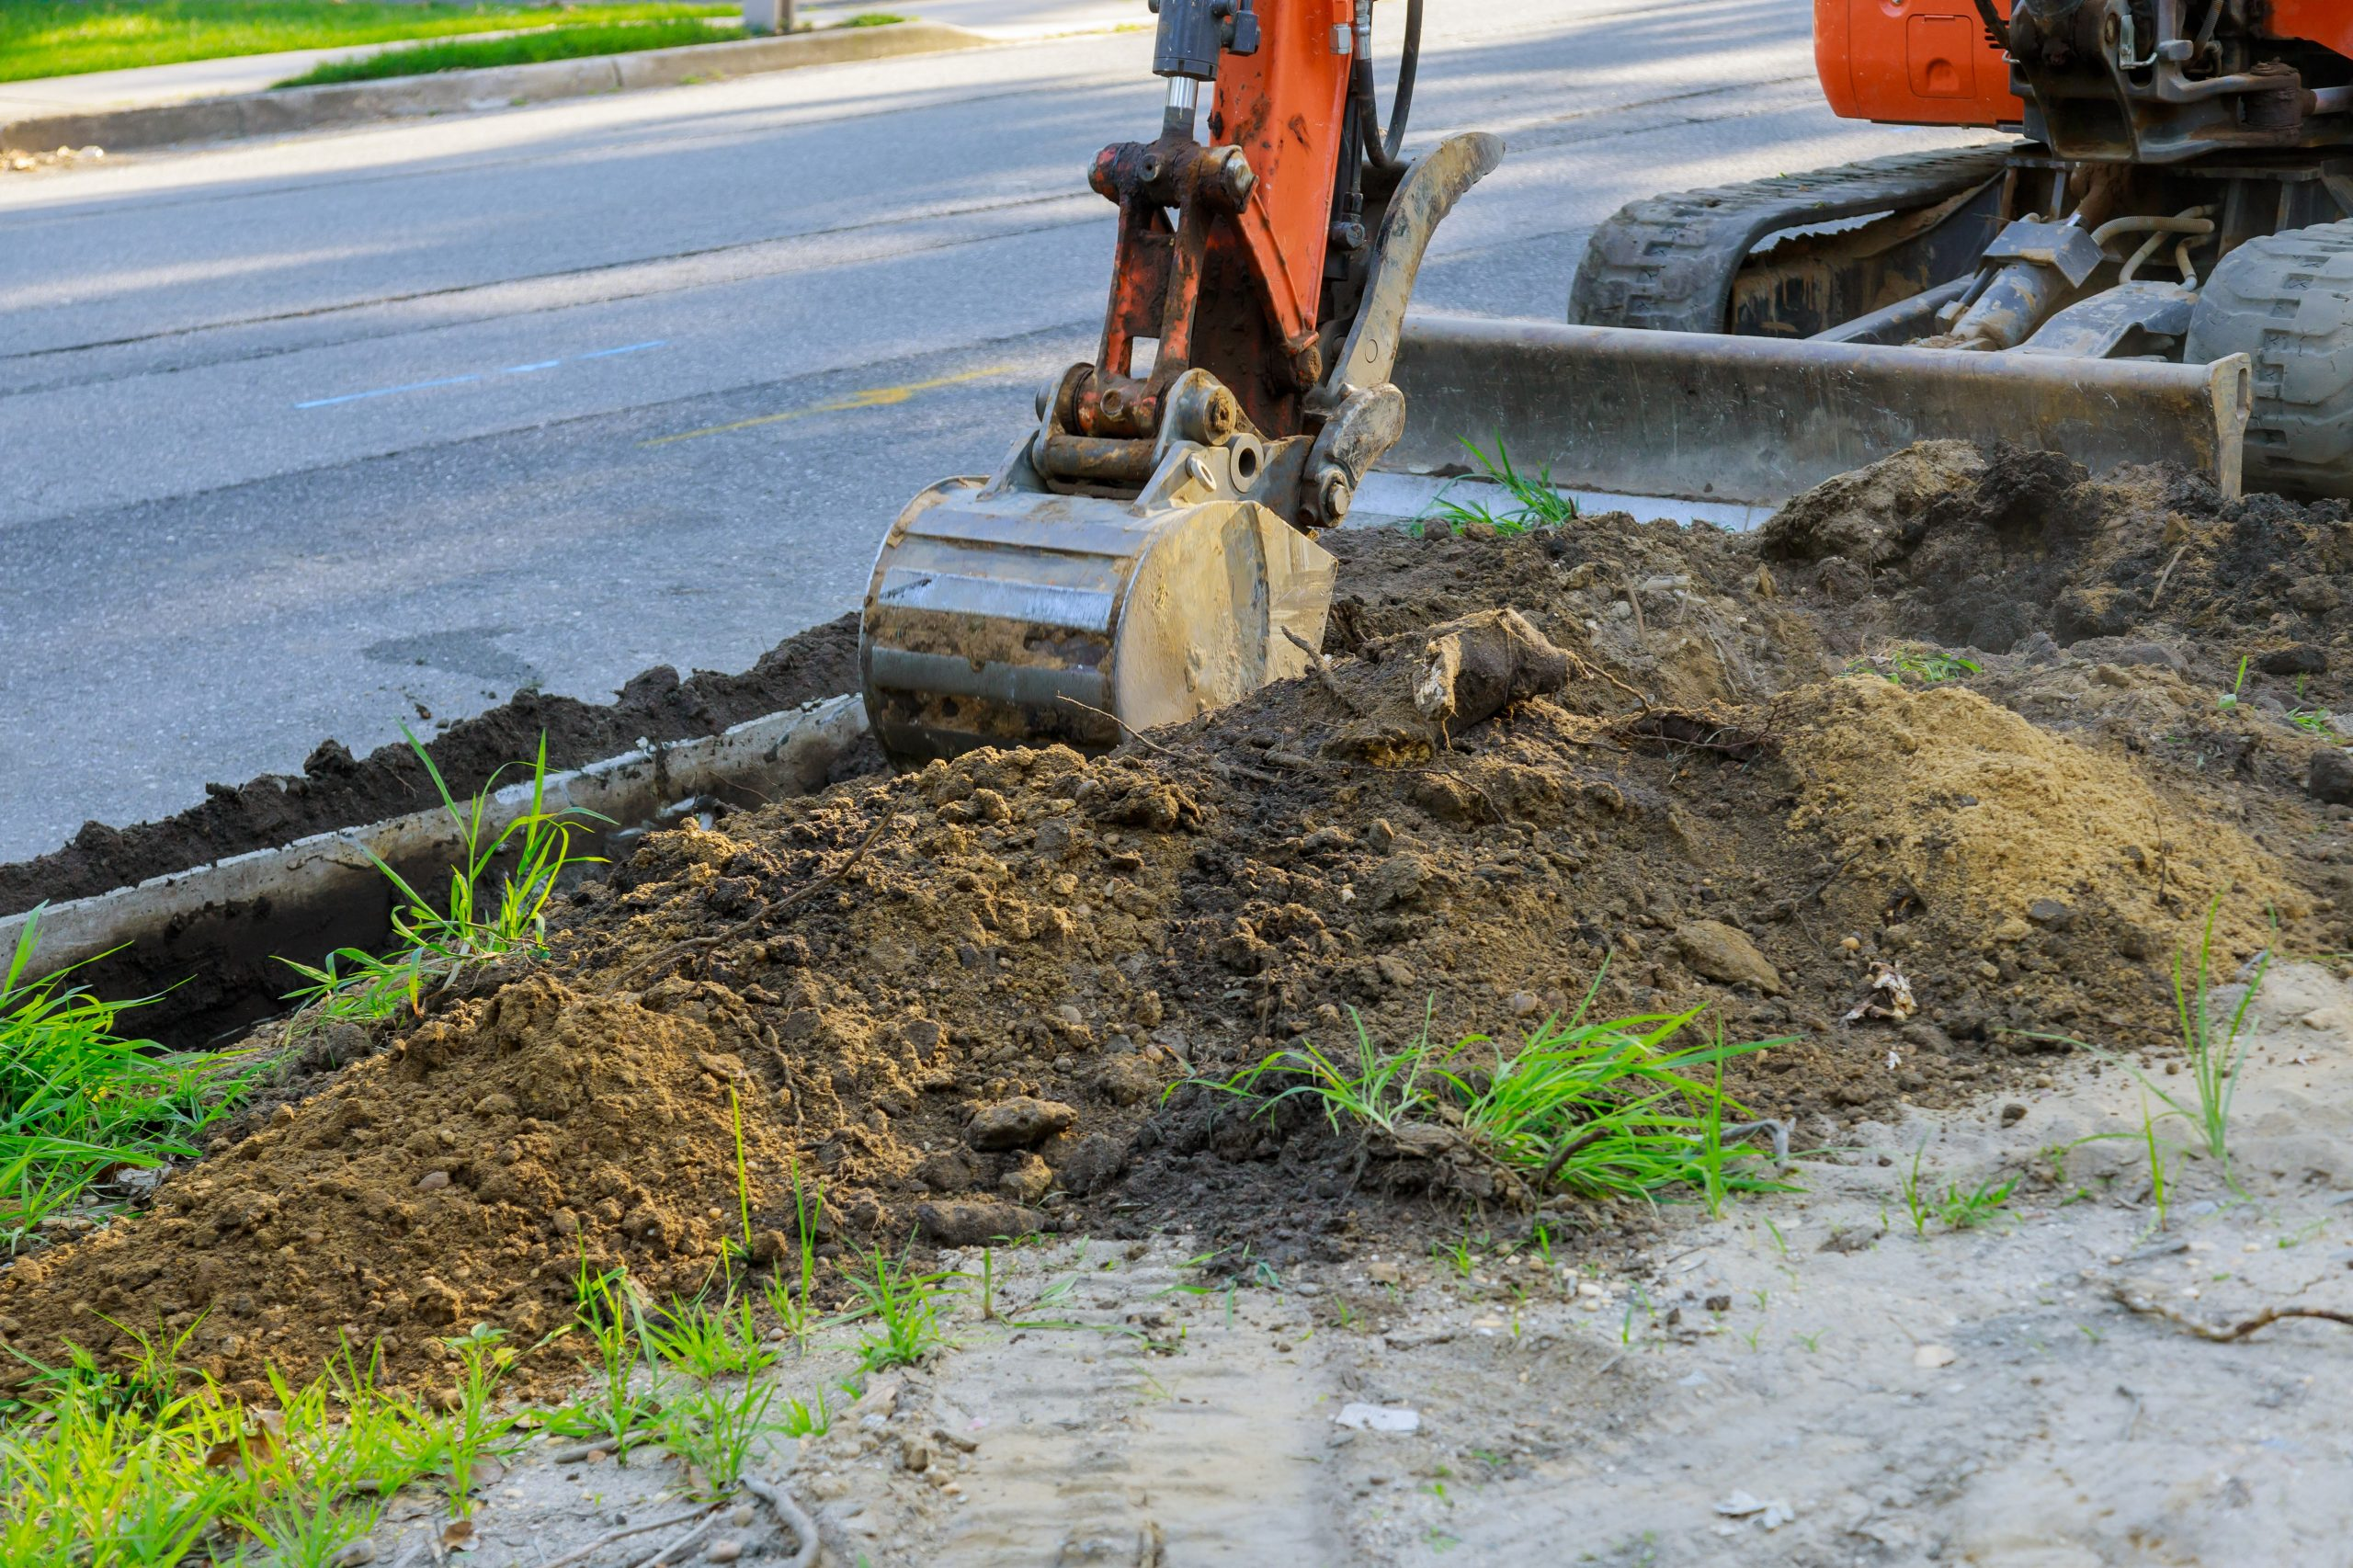 Construction worker using special machine to create trench in residential area.